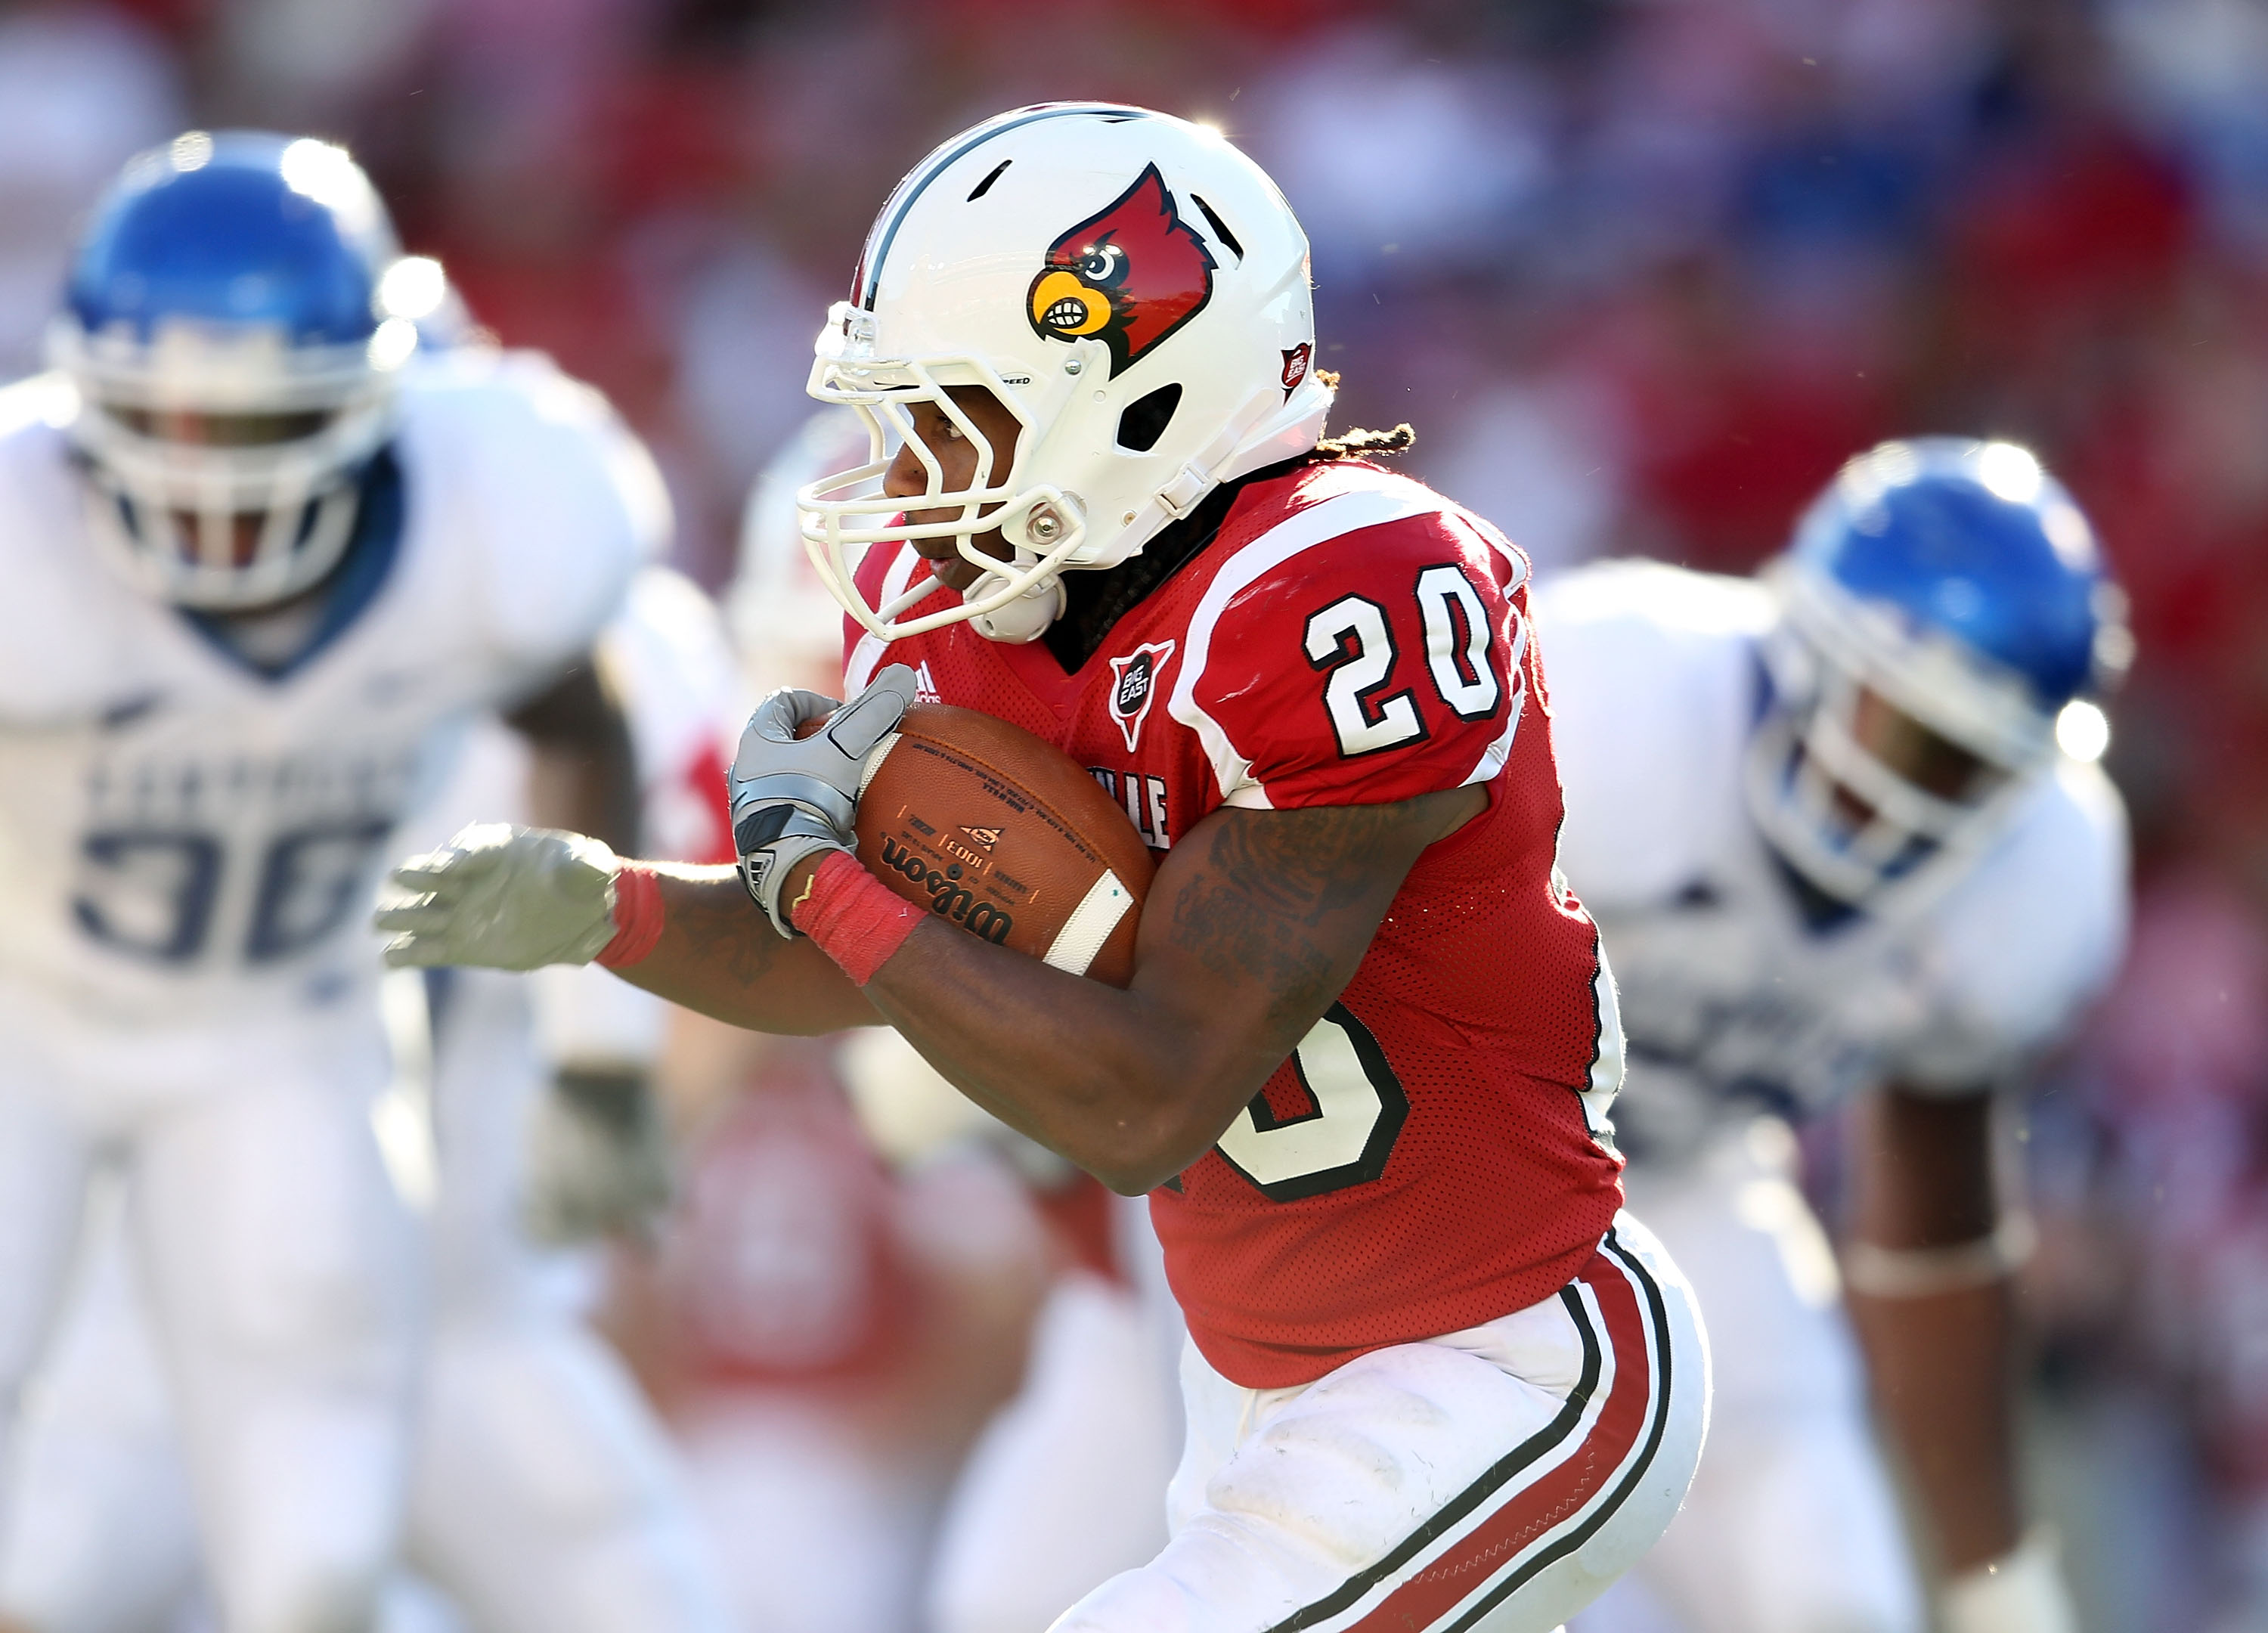 LOUISVILLE, KY - SEPTEMBER 04: Victor Anderson #20 of the Louisville Cardinals runs with the ball during the game against the Kentucky Wildcats at Papa John's Cardinal Stadium on September 4, 2010 in Louisville, Kentucky.  (Photo by Andy Lyons/Getty Image